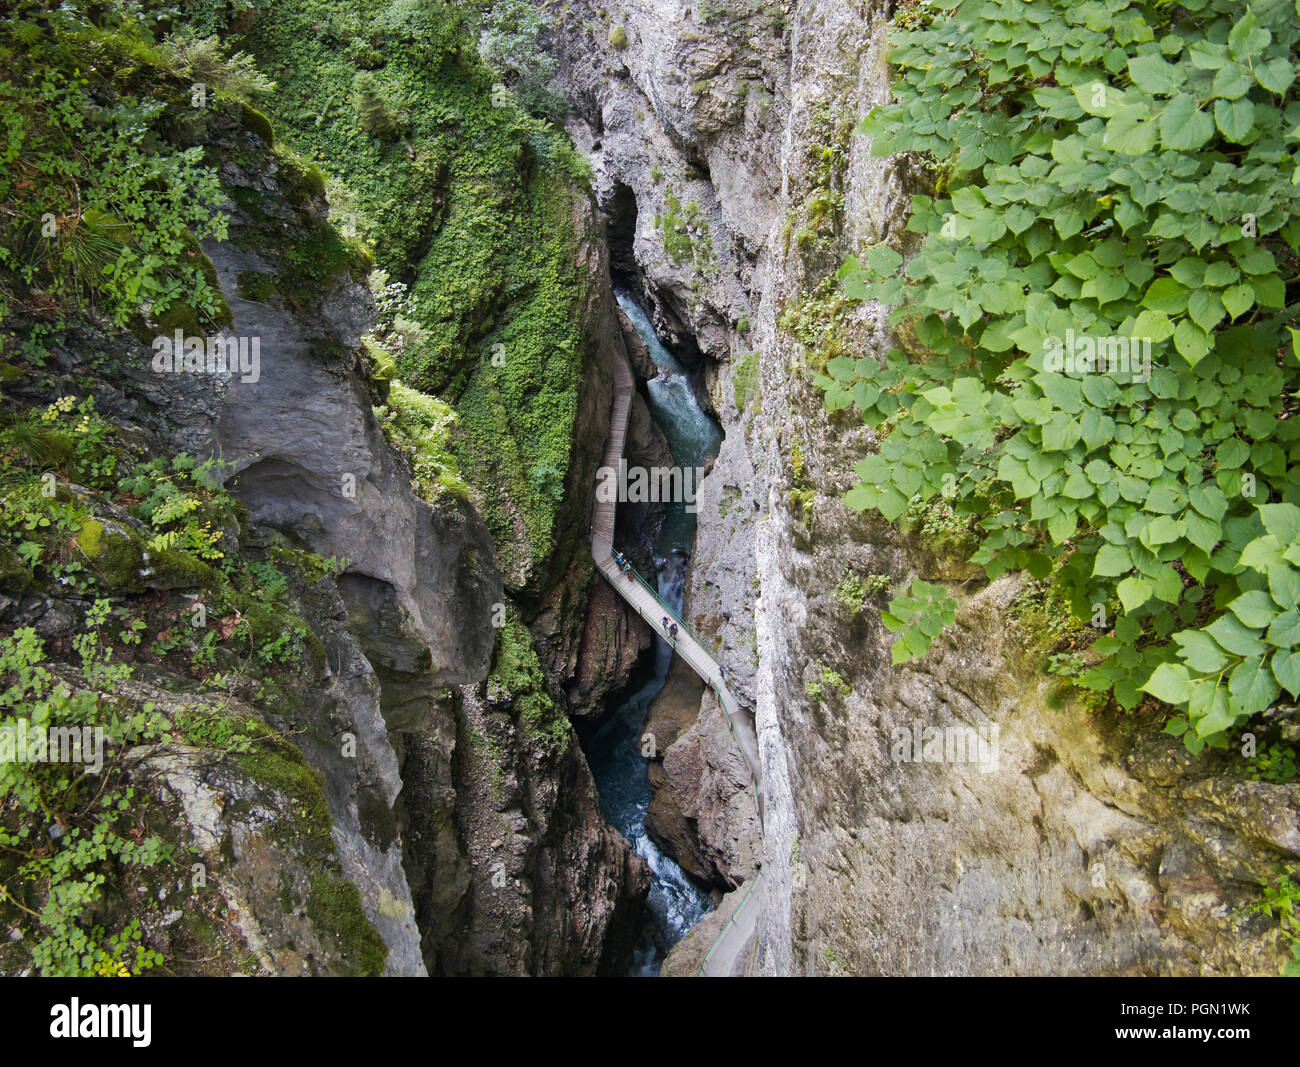 View of the gorge and the path through the gorge seen from above - Stock Image